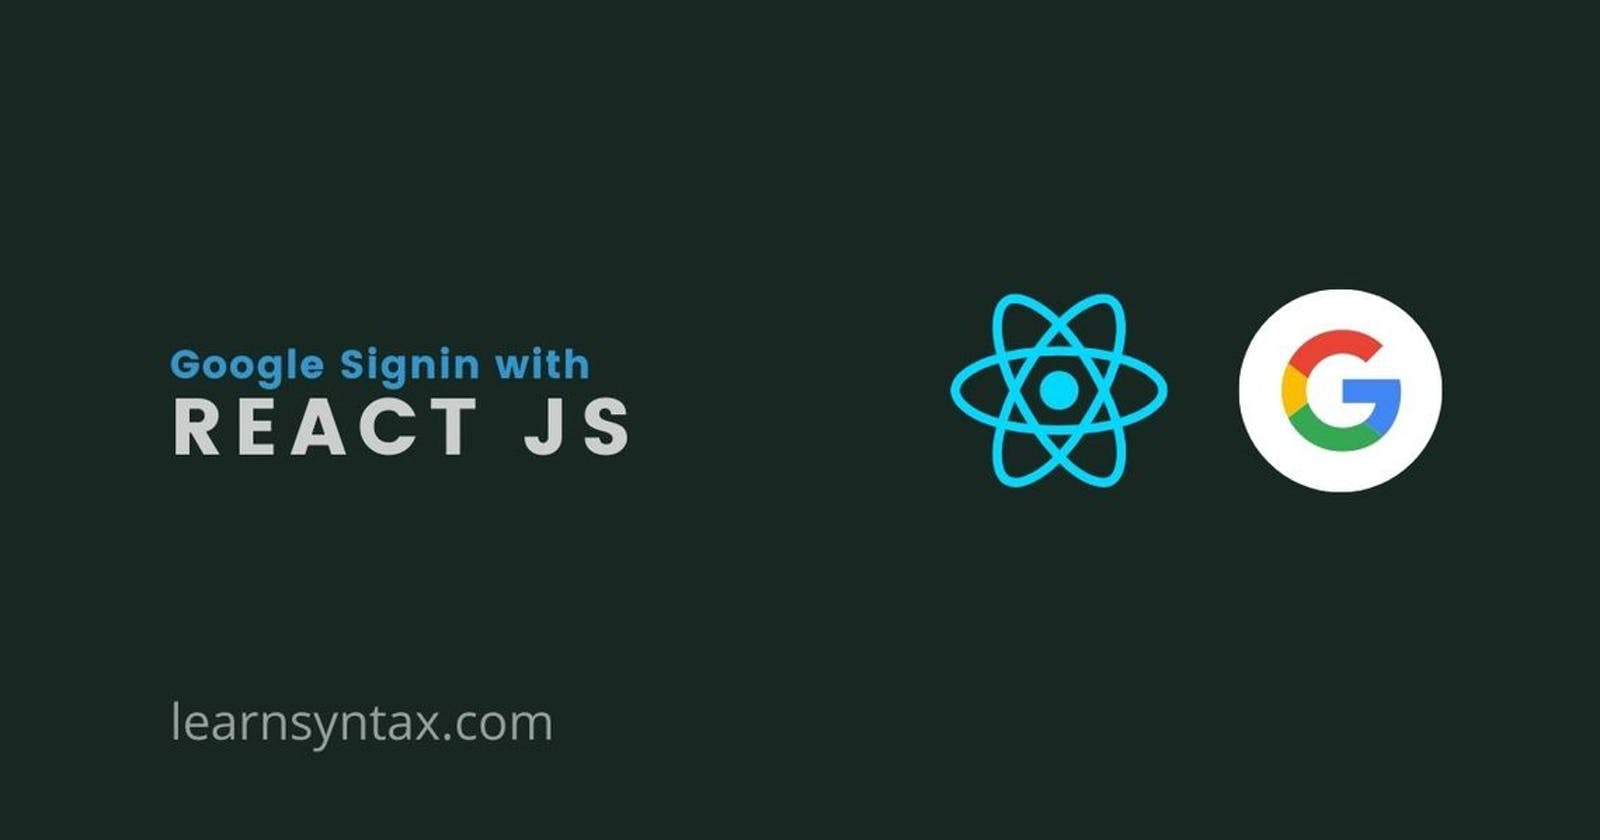 Login with Google in React JS